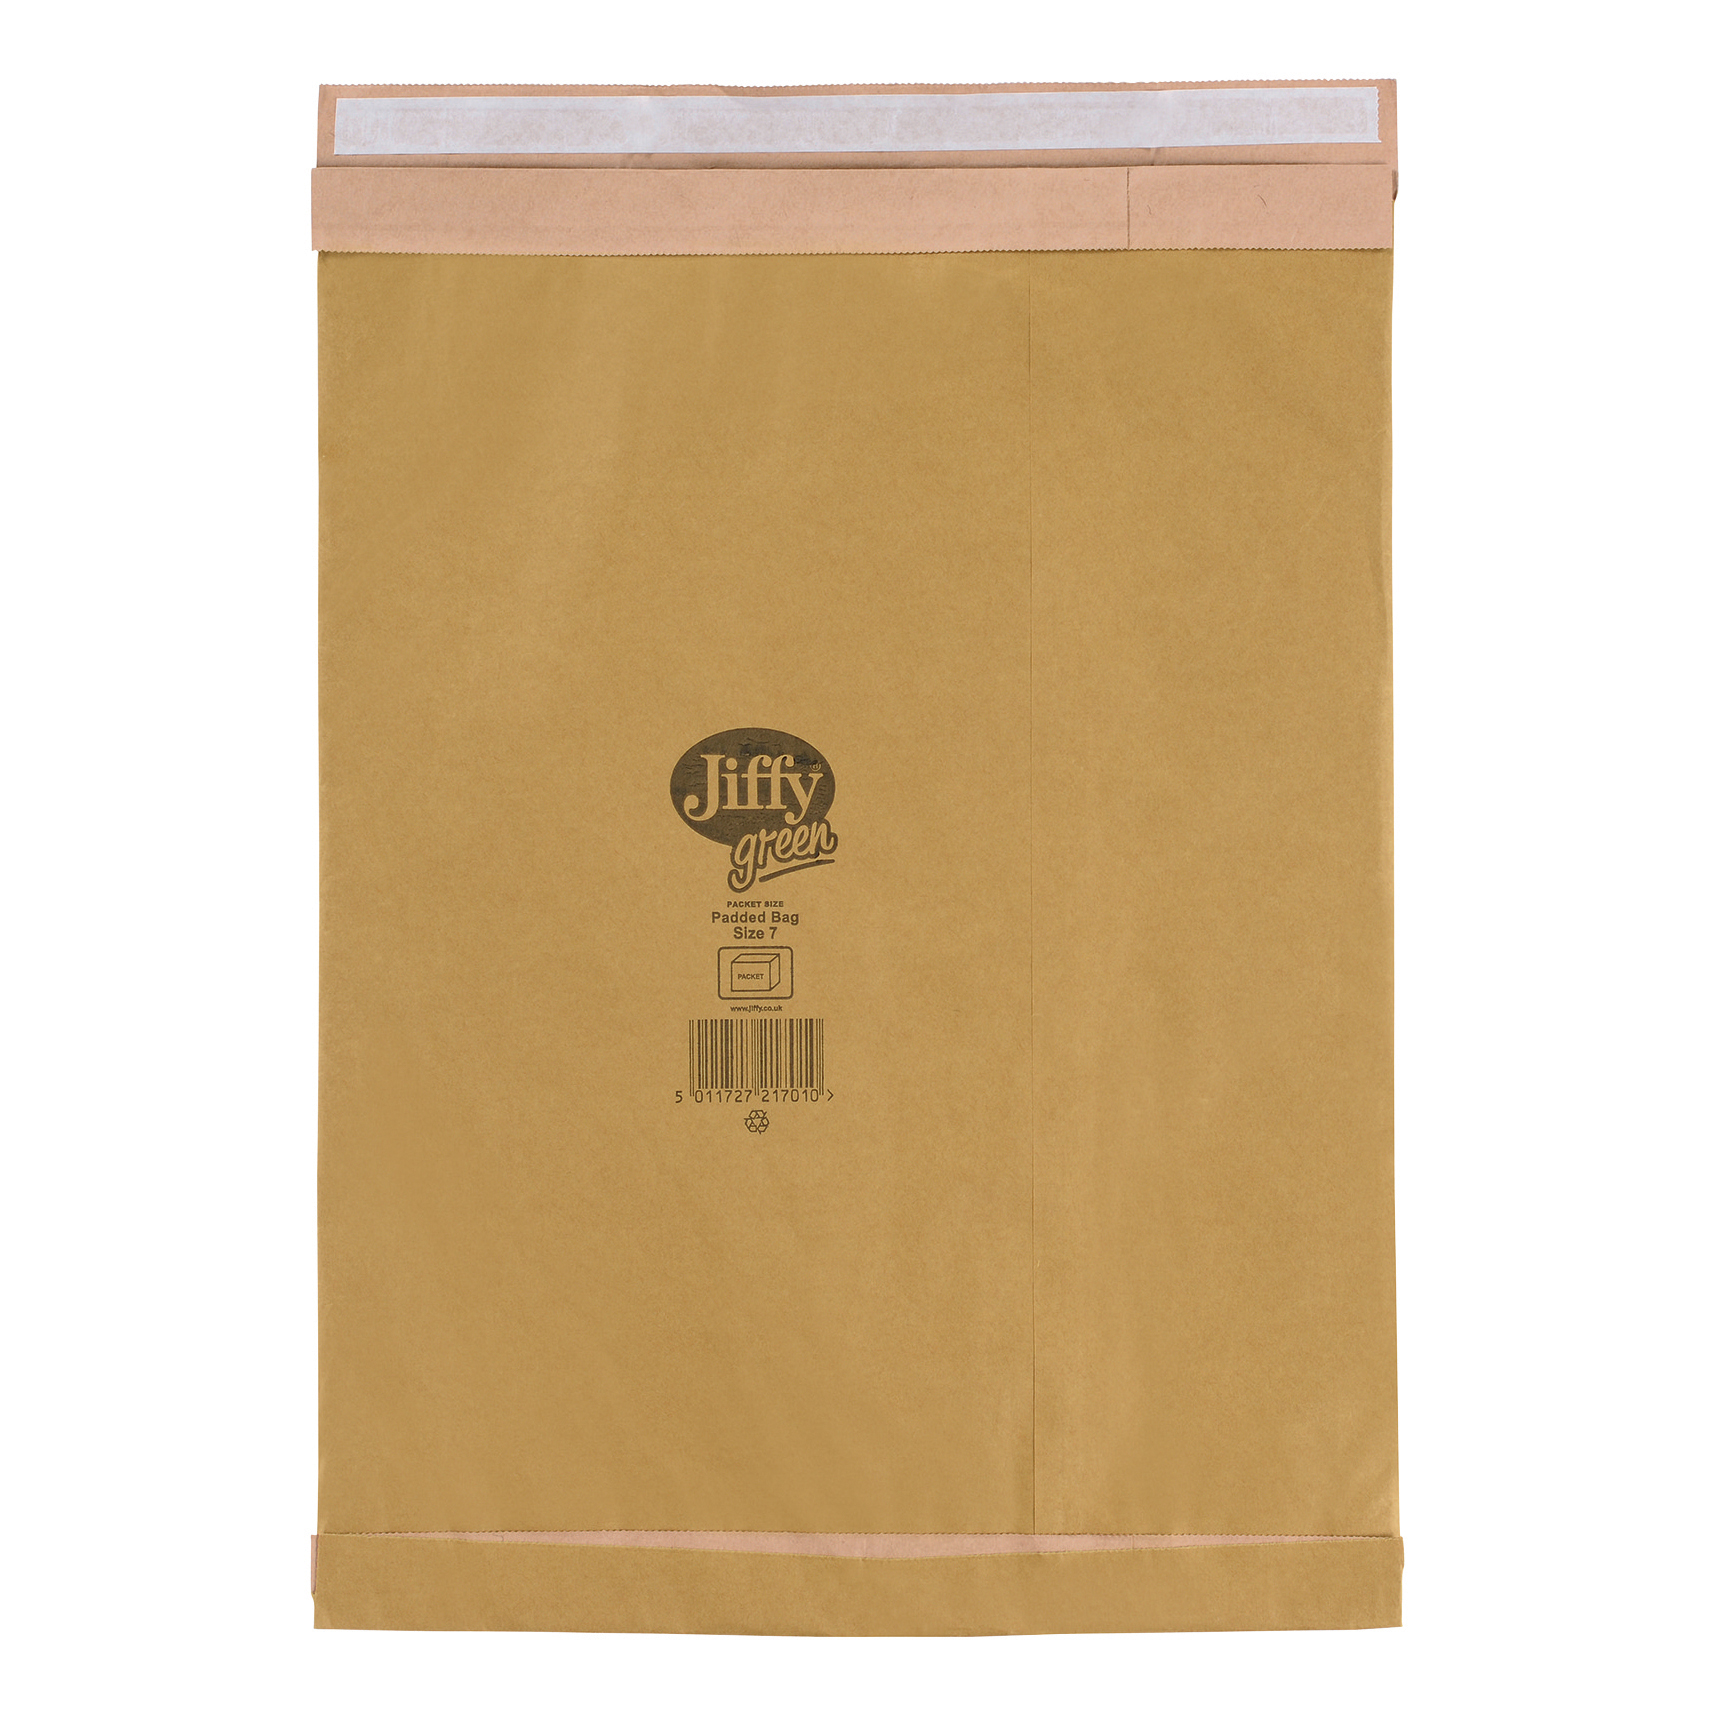 Jiffy Green Padded Bags with Kraft and Recycled Paper Cushioning Size 7 341x483mm Ref 01902 [Pack 25]